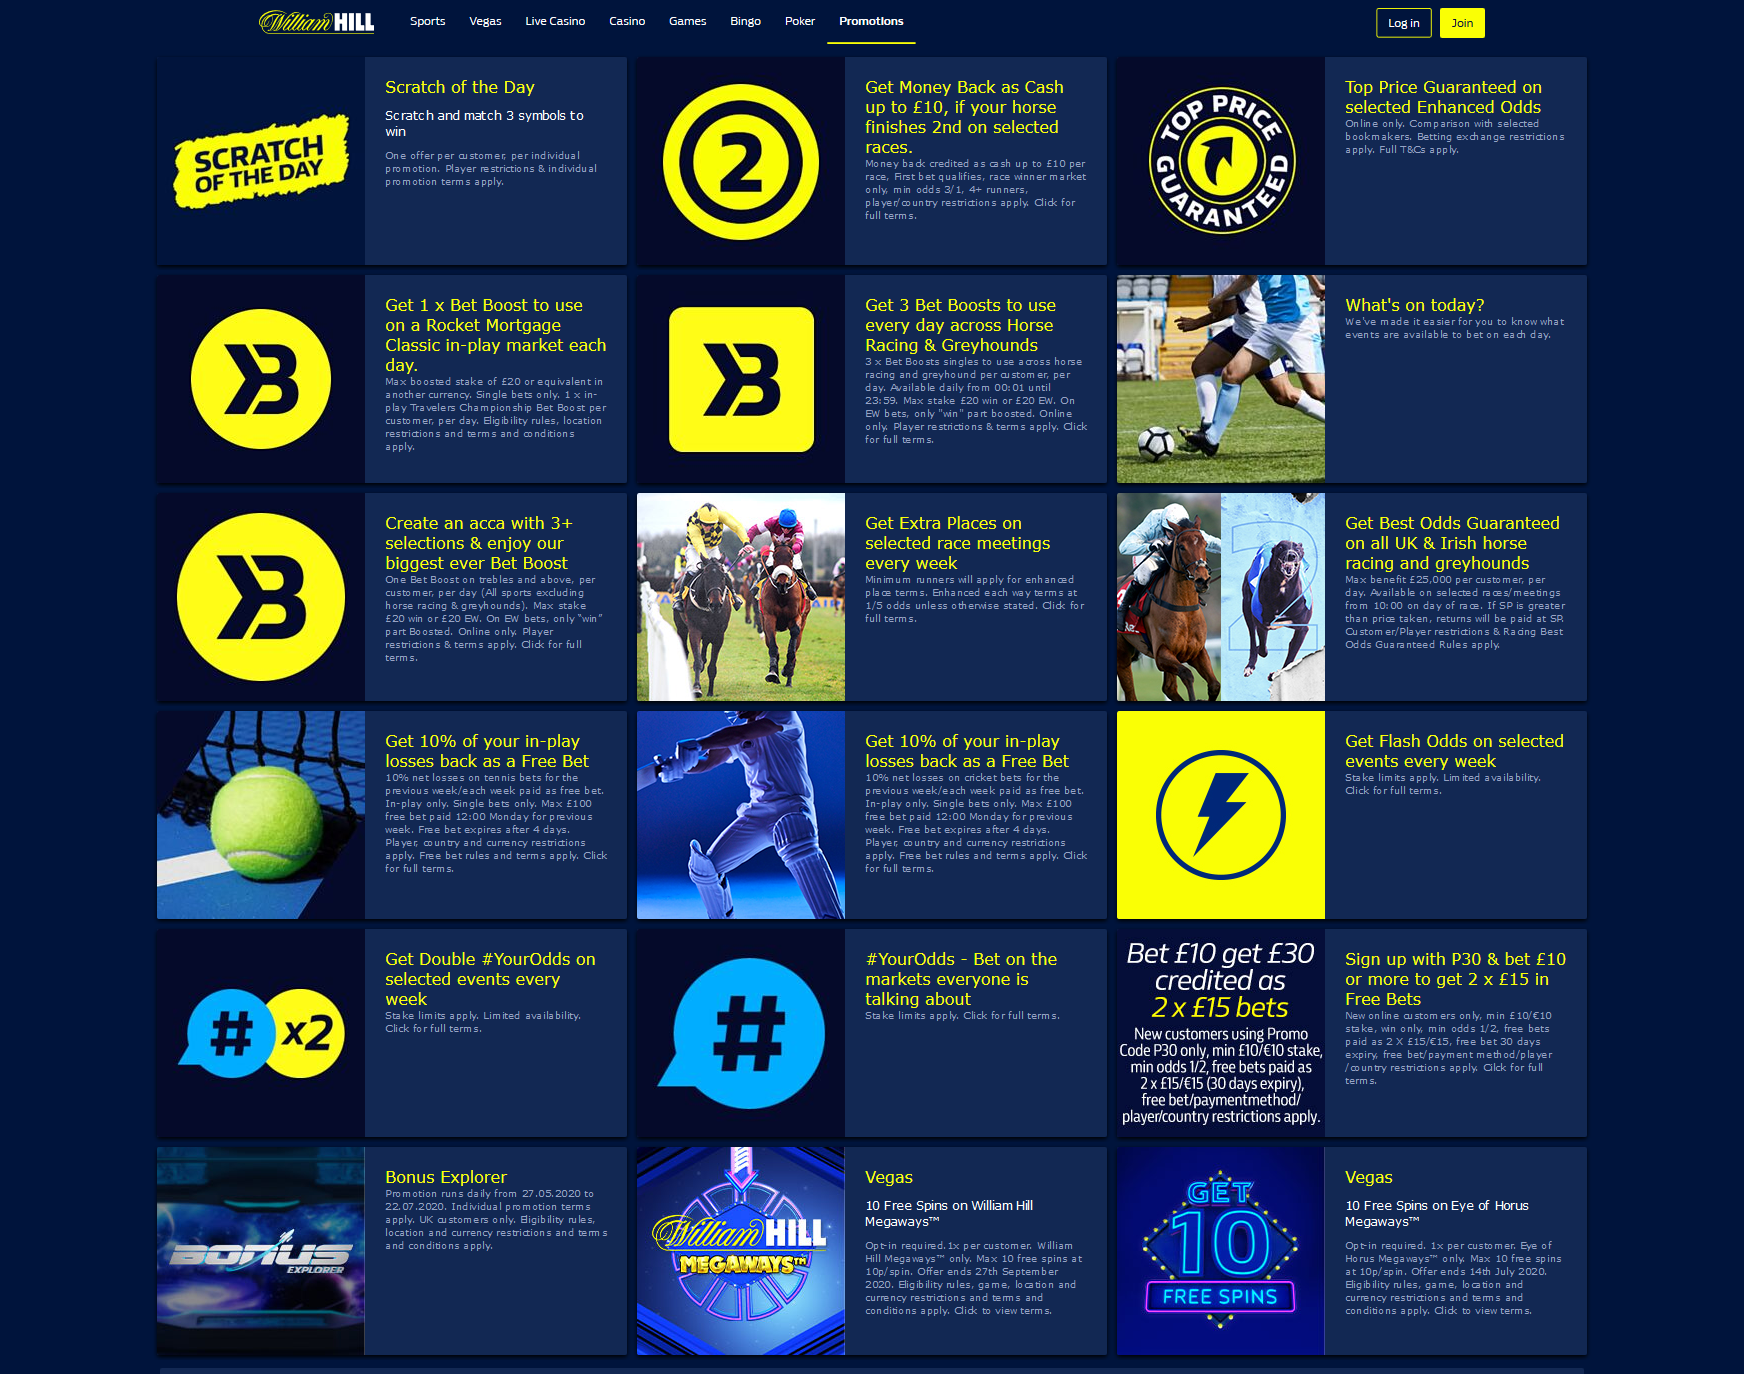 bookmaker william hill bonuses and promotions